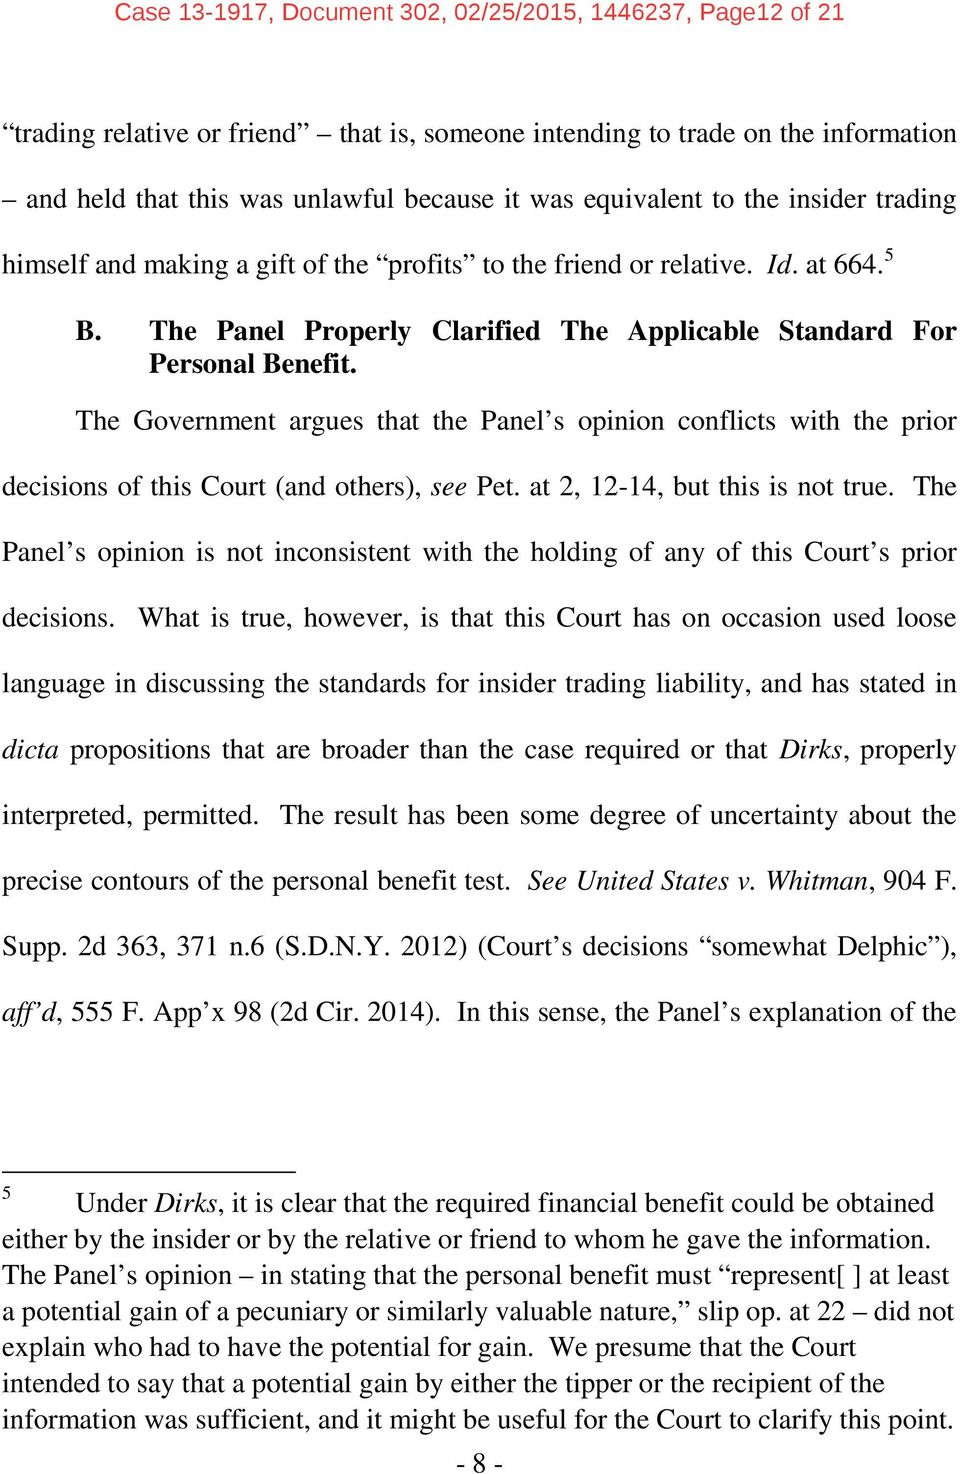 The Government argues that the Panel s opinion conflicts with the prior decisions of this Court (and others), see Pet. at 2, 12-14, but this is not true.